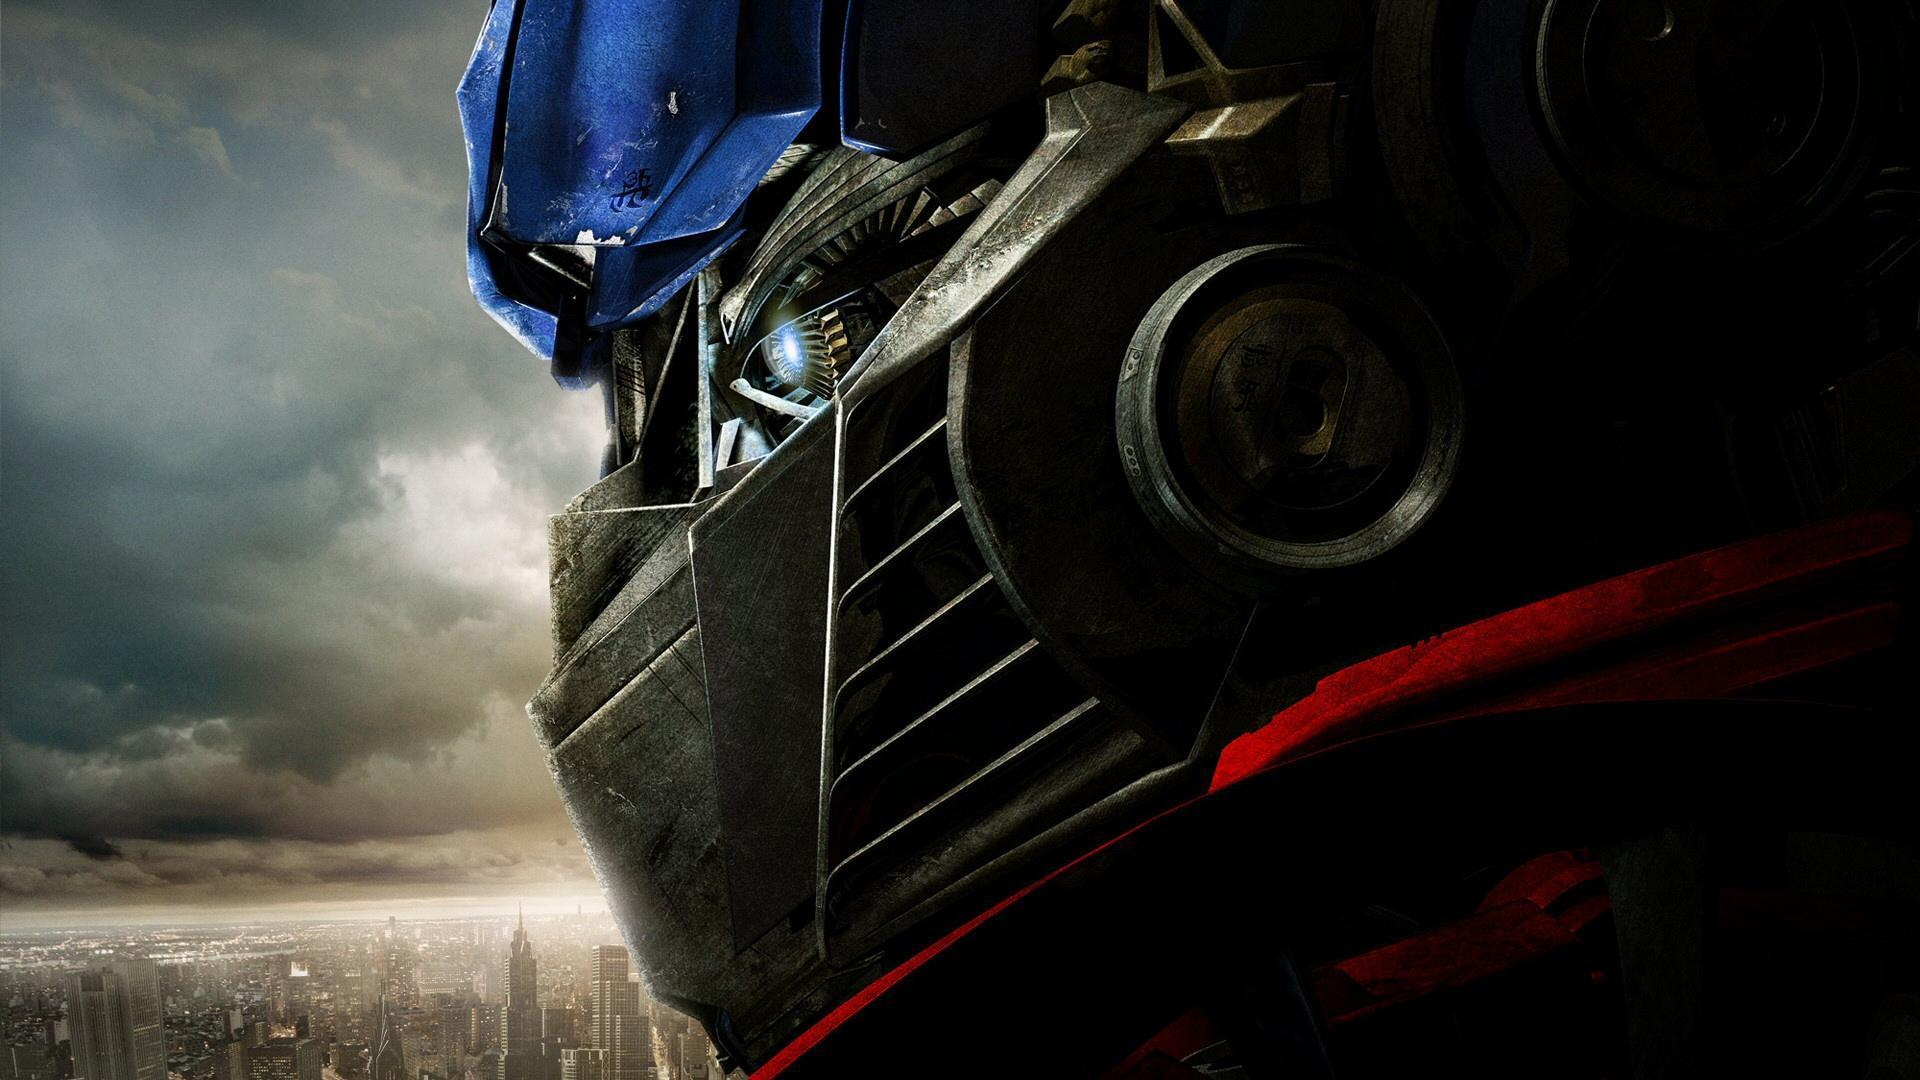 optimus prime wallpaper download - photo #11